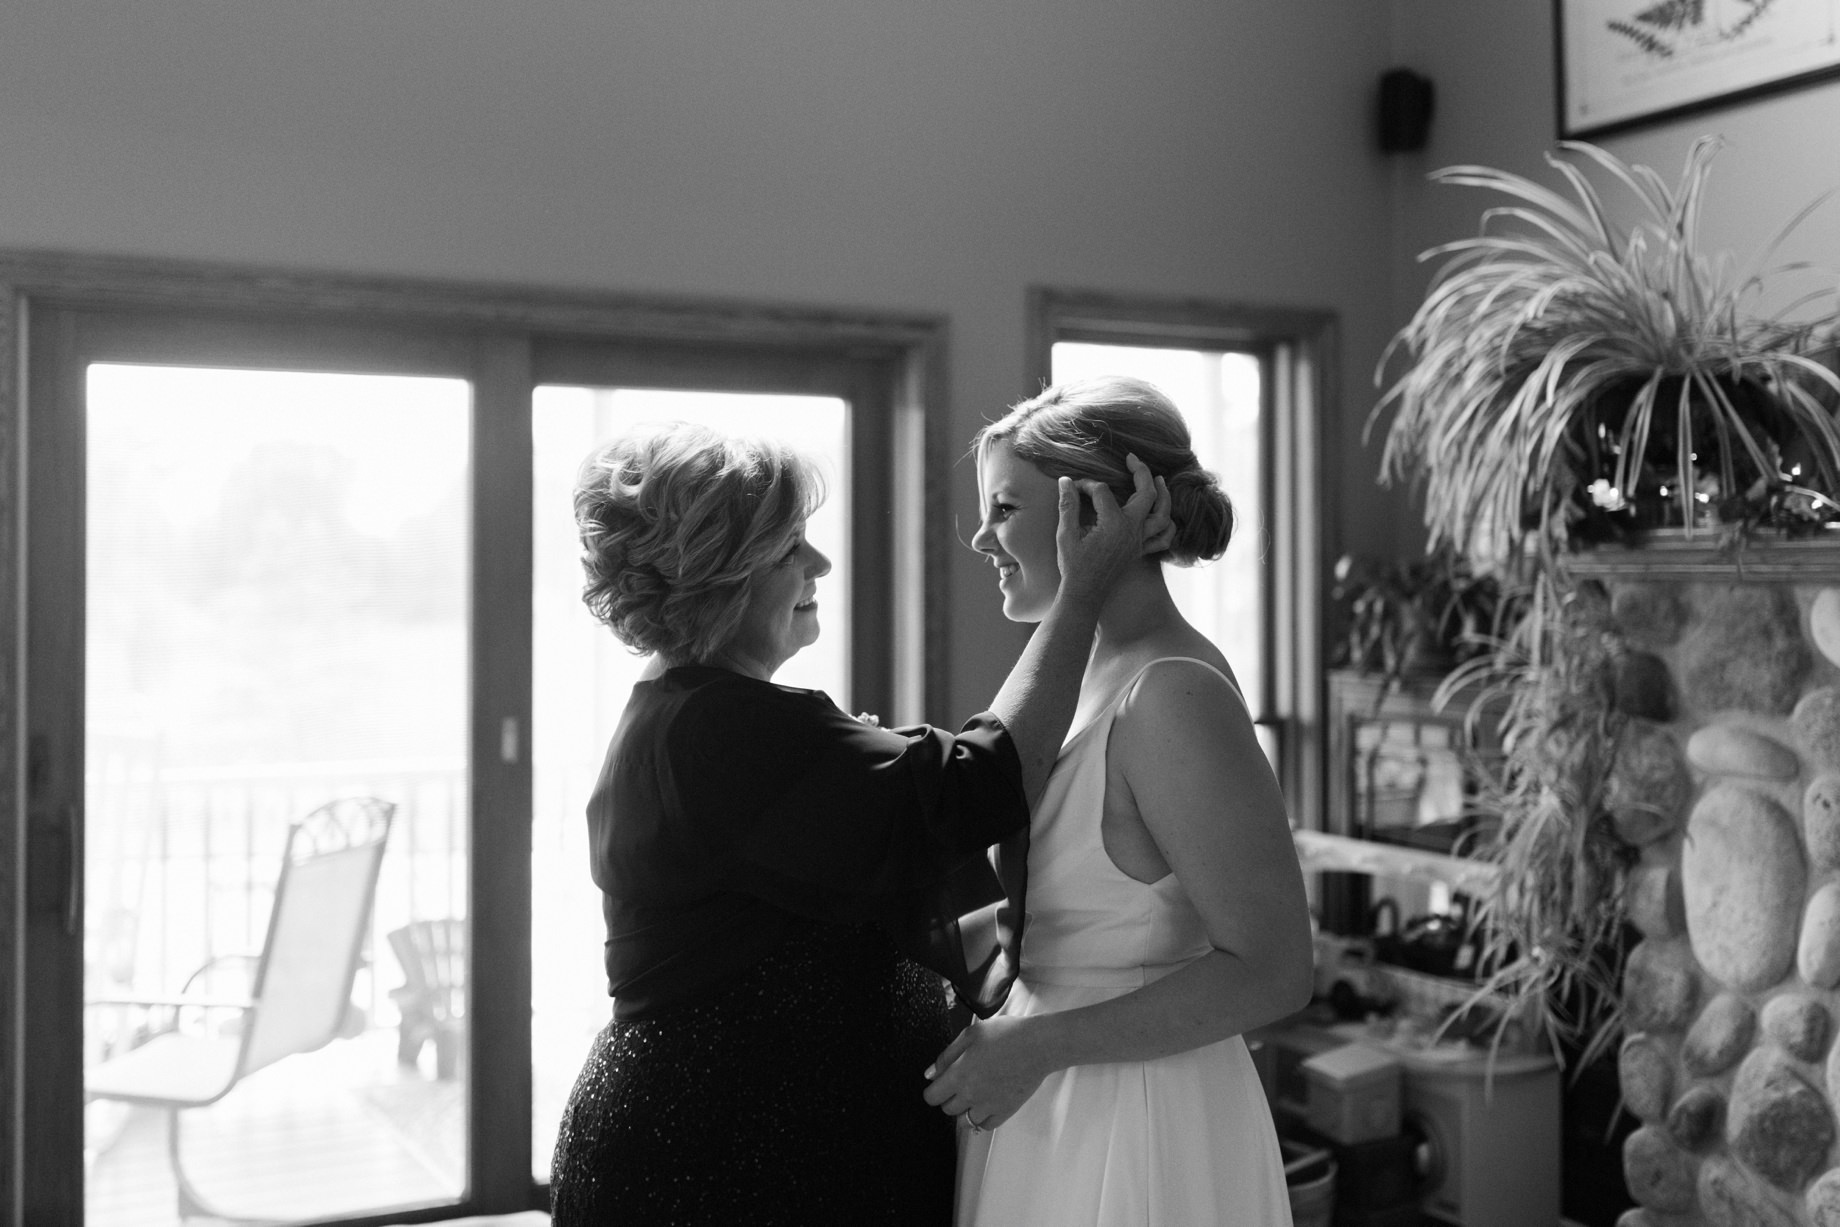 a mother takes a moment to admire her daughter on her wedding day